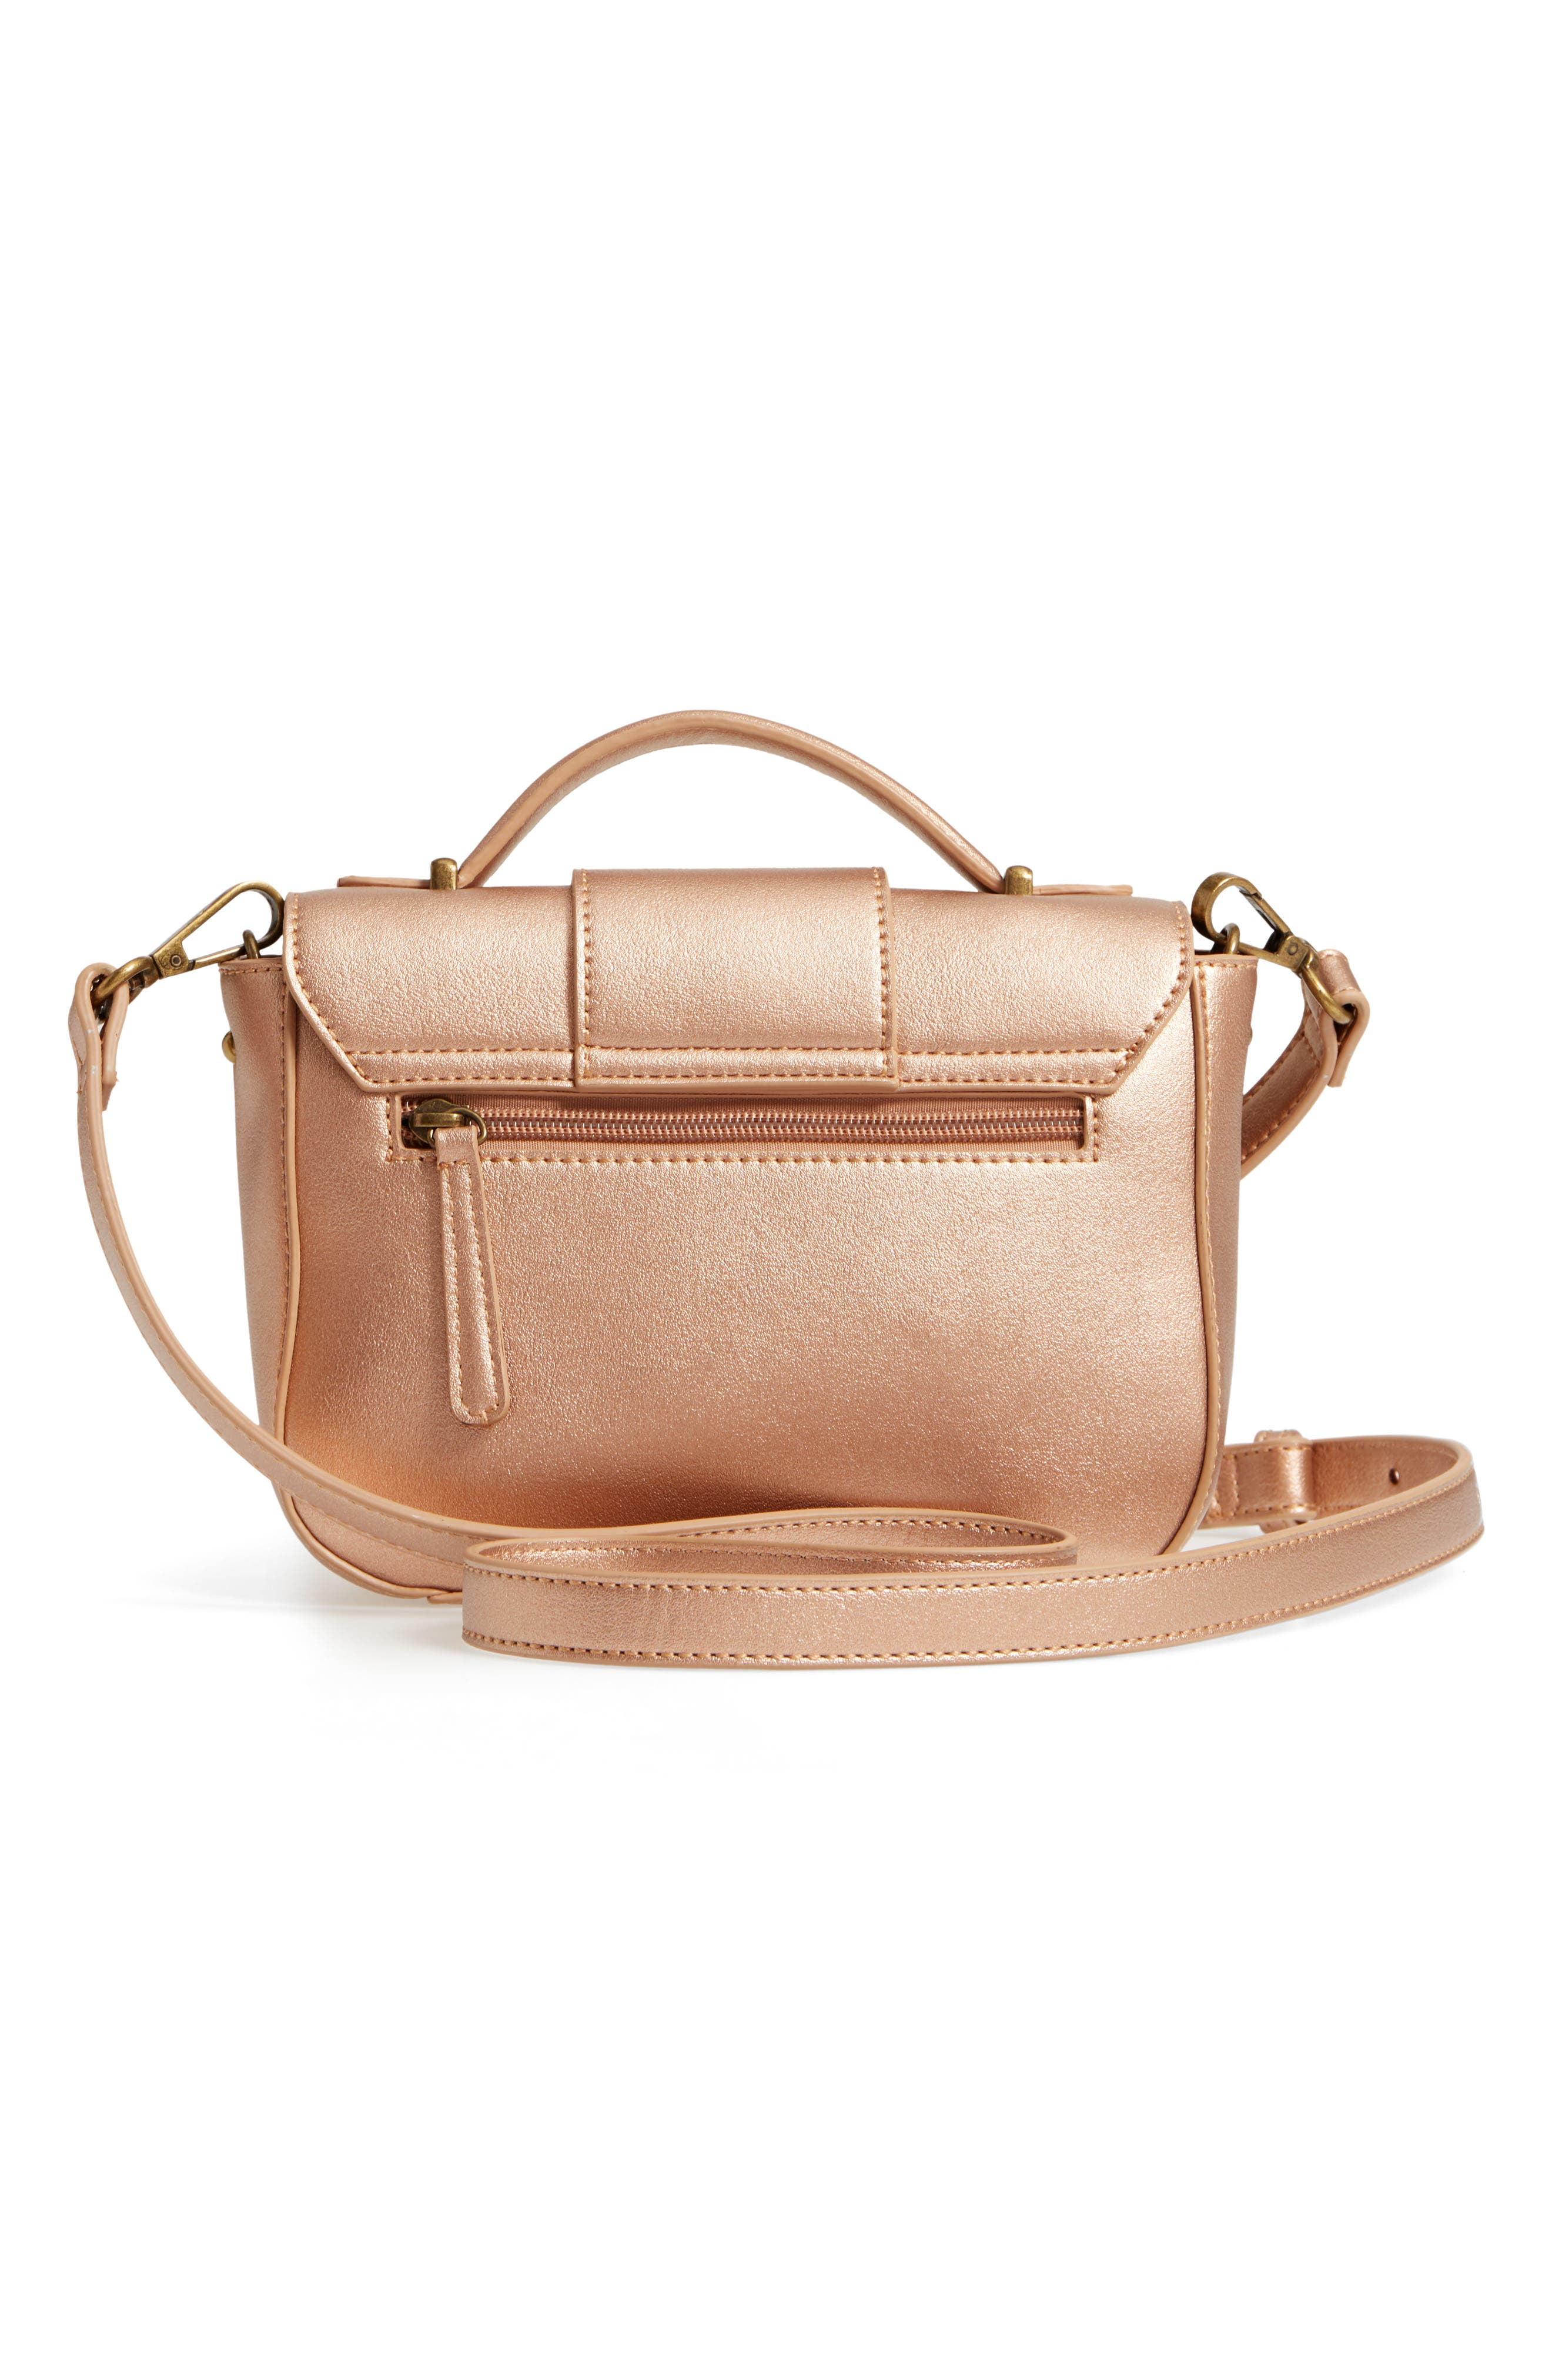 MALIBU SKYE, Oversize Buckle Top Handle Bag, Alternate thumbnail 4, color, ROSE GOLD